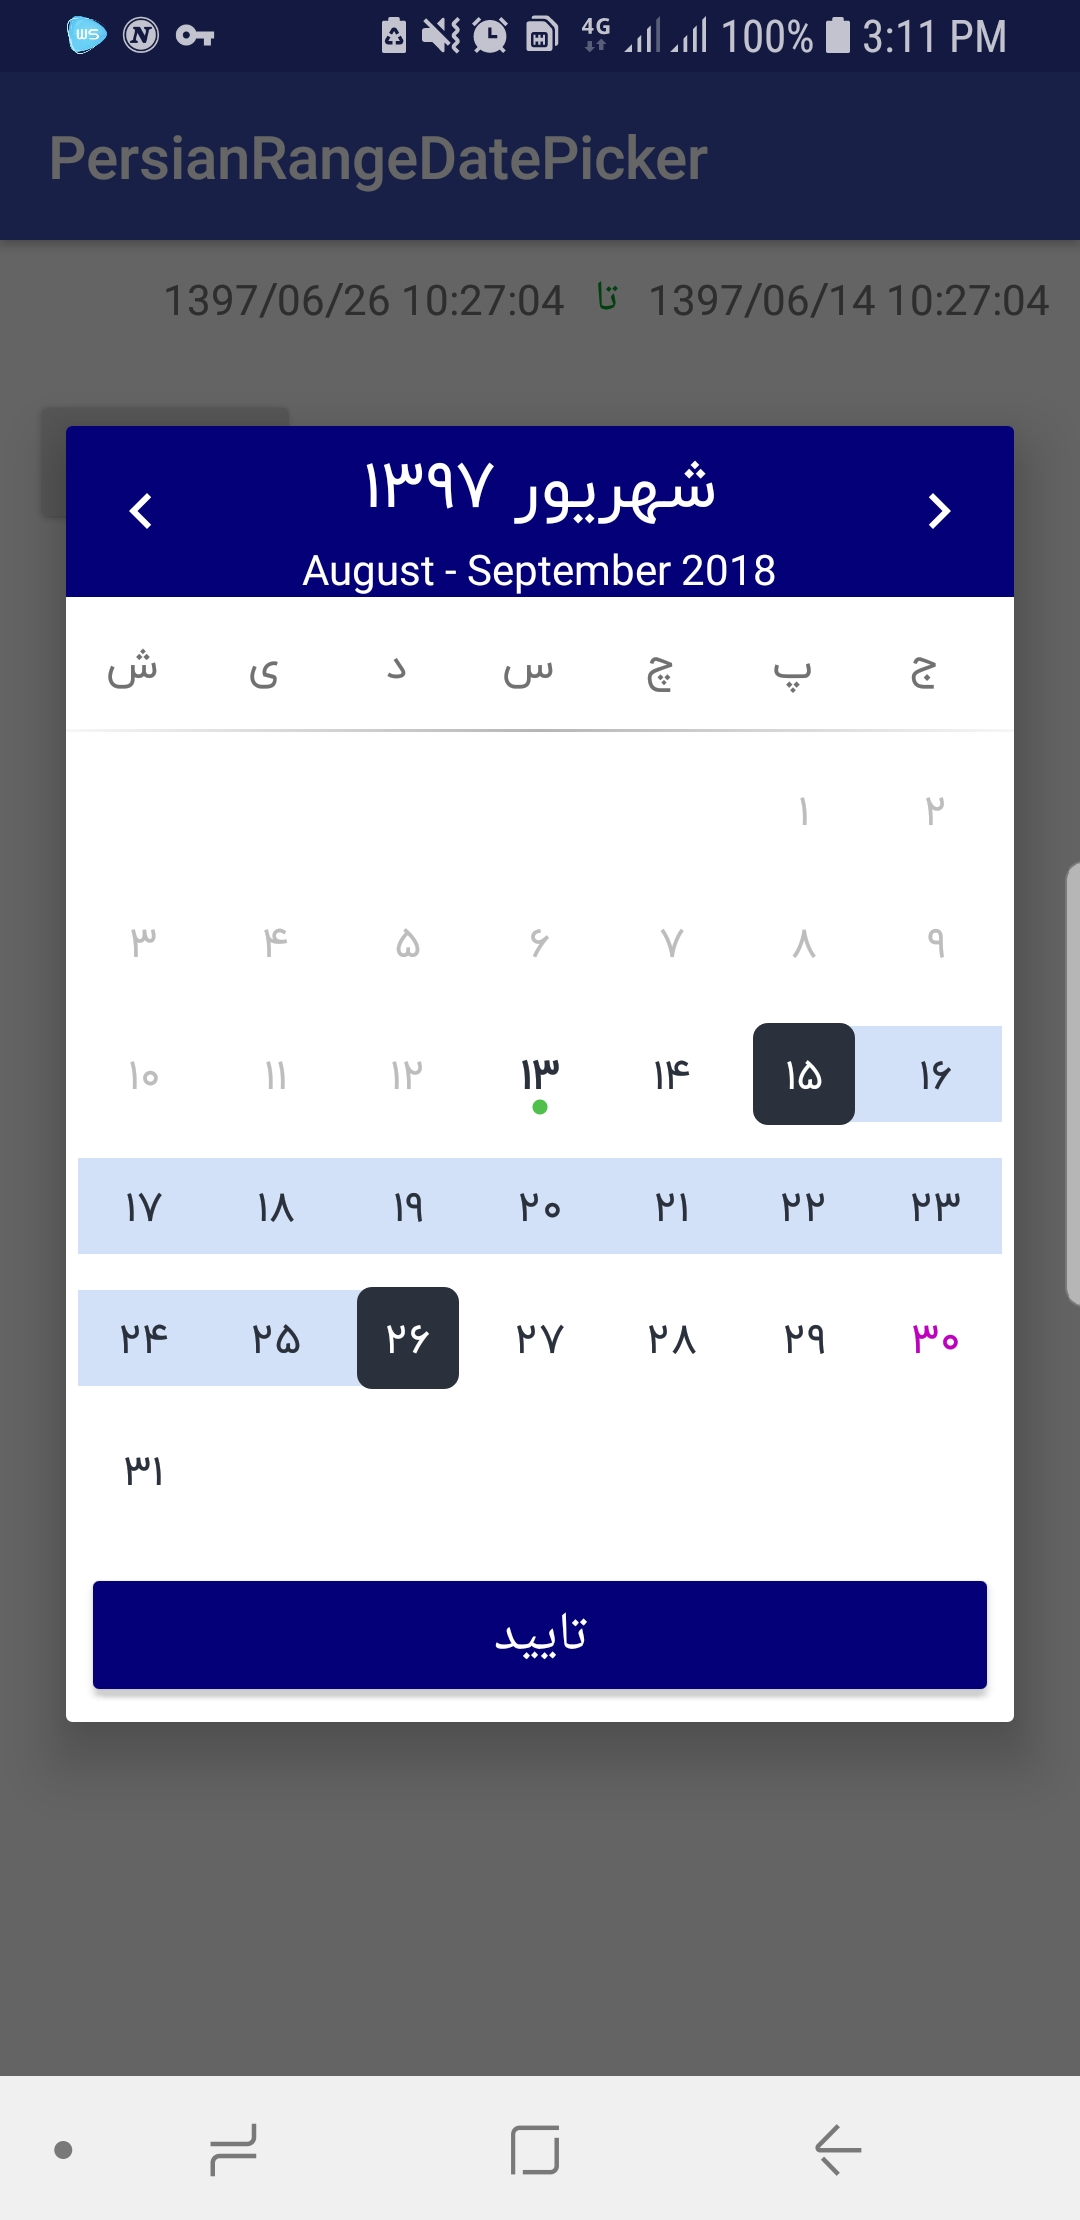 How To Feed Datepicker Widget With Other Calendar Sytems